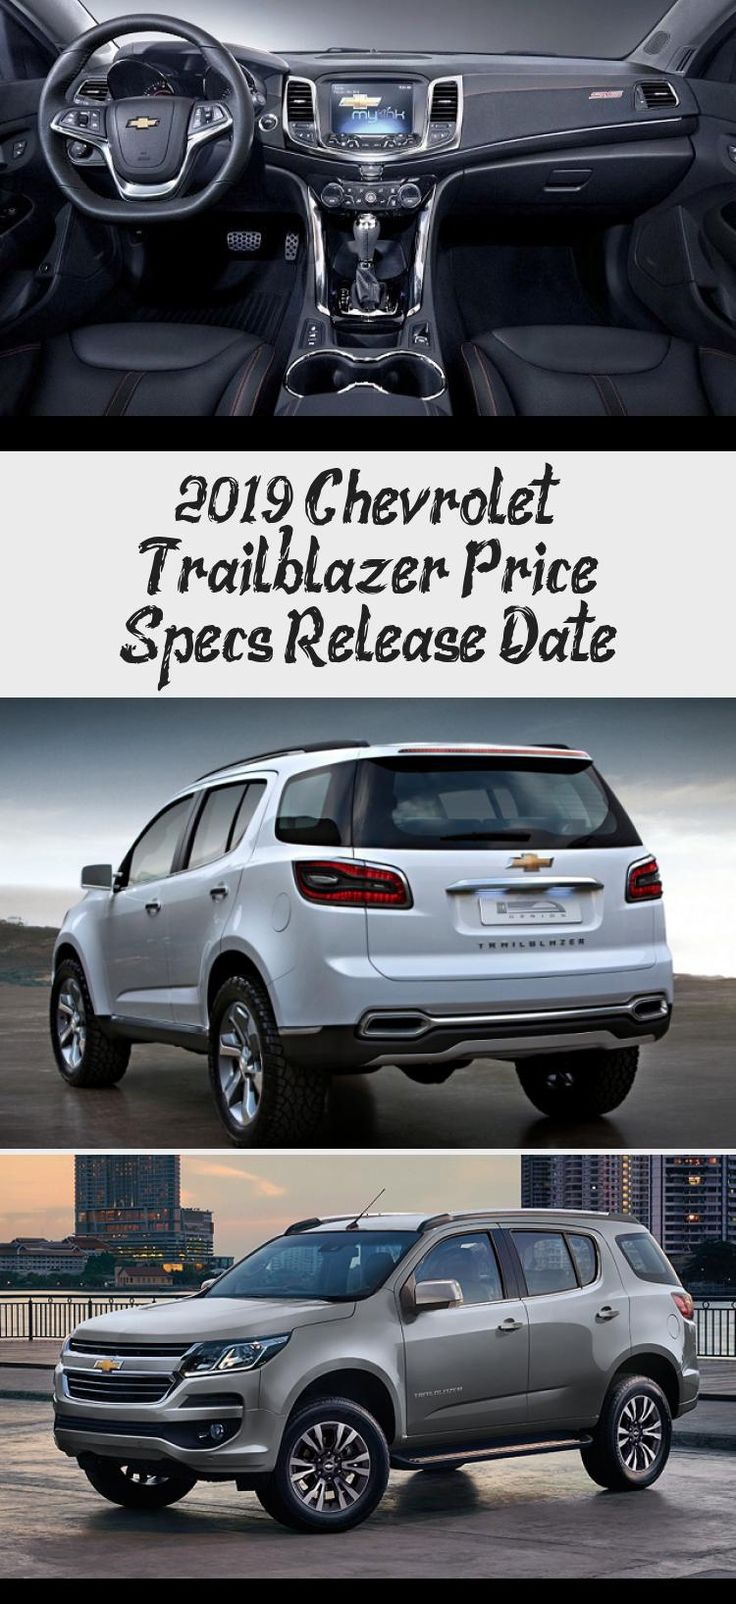 2019 Chevrolet Trailblazer Price, Specs, Release Date in